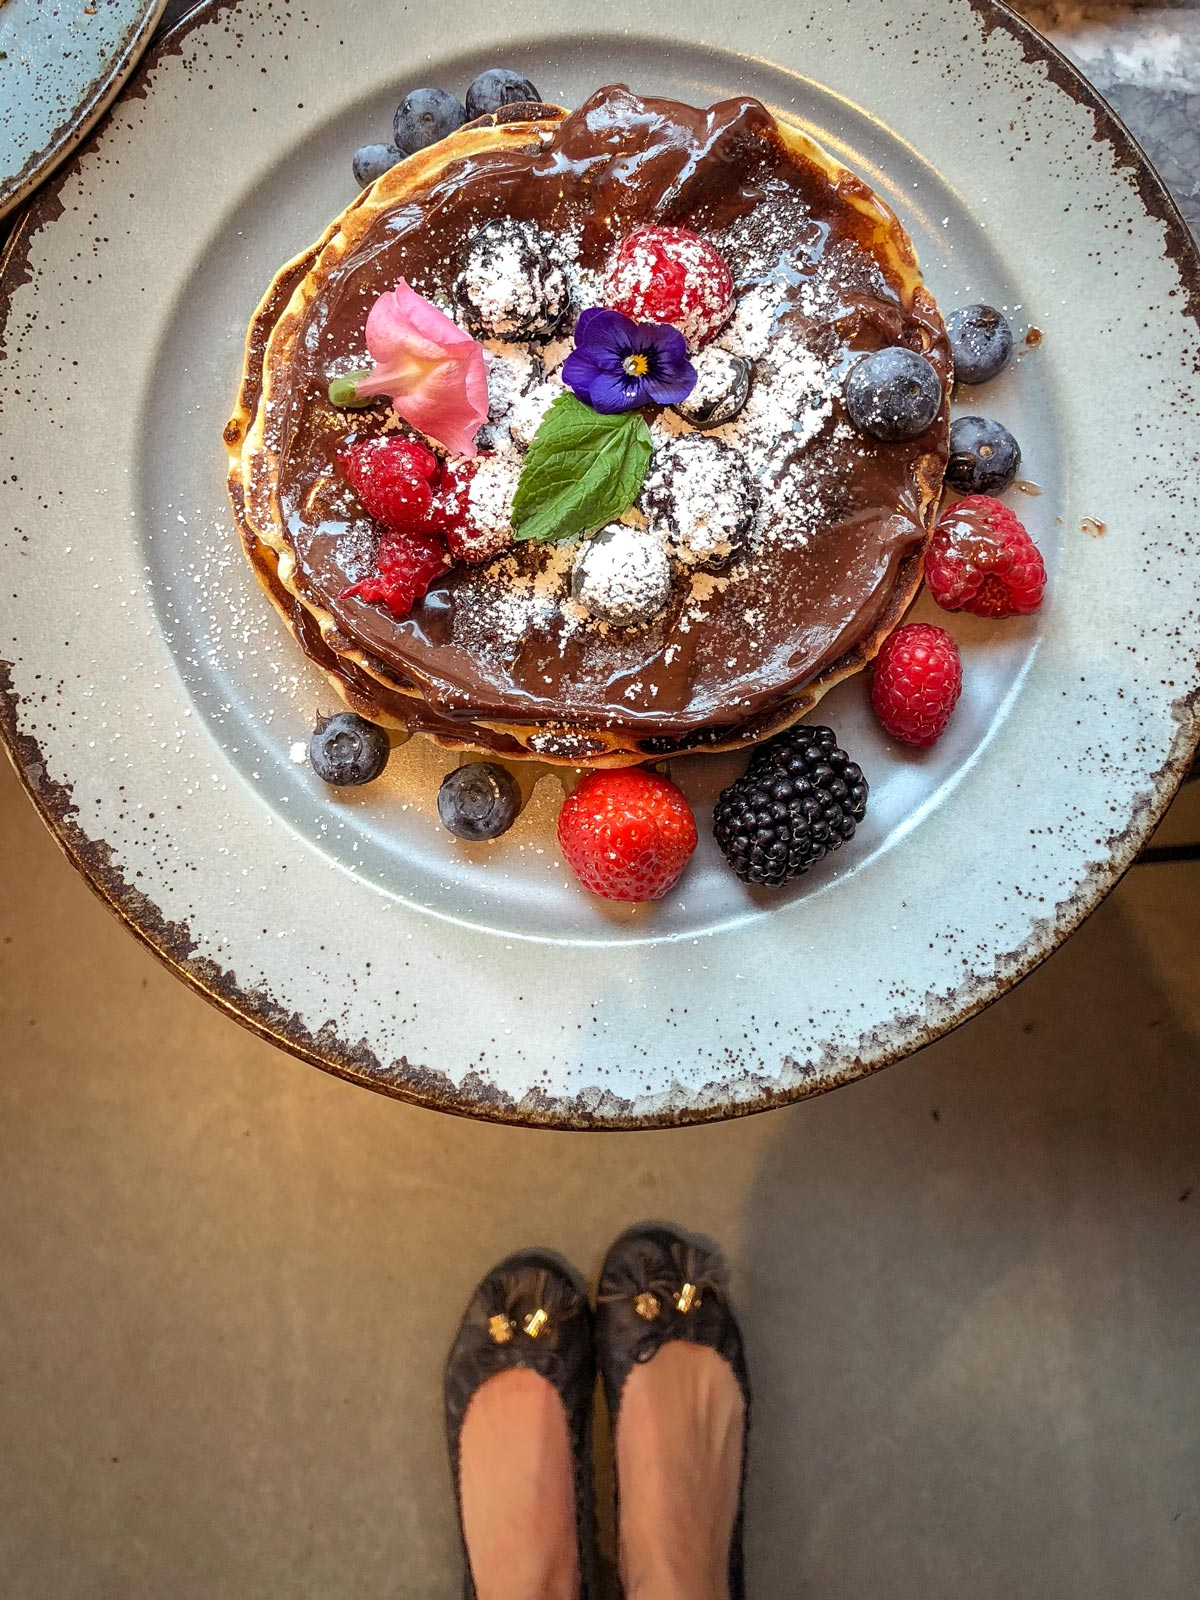 Chocolate Pancakes. Flower Pancakes in London. 39 Steps Coffee Haus